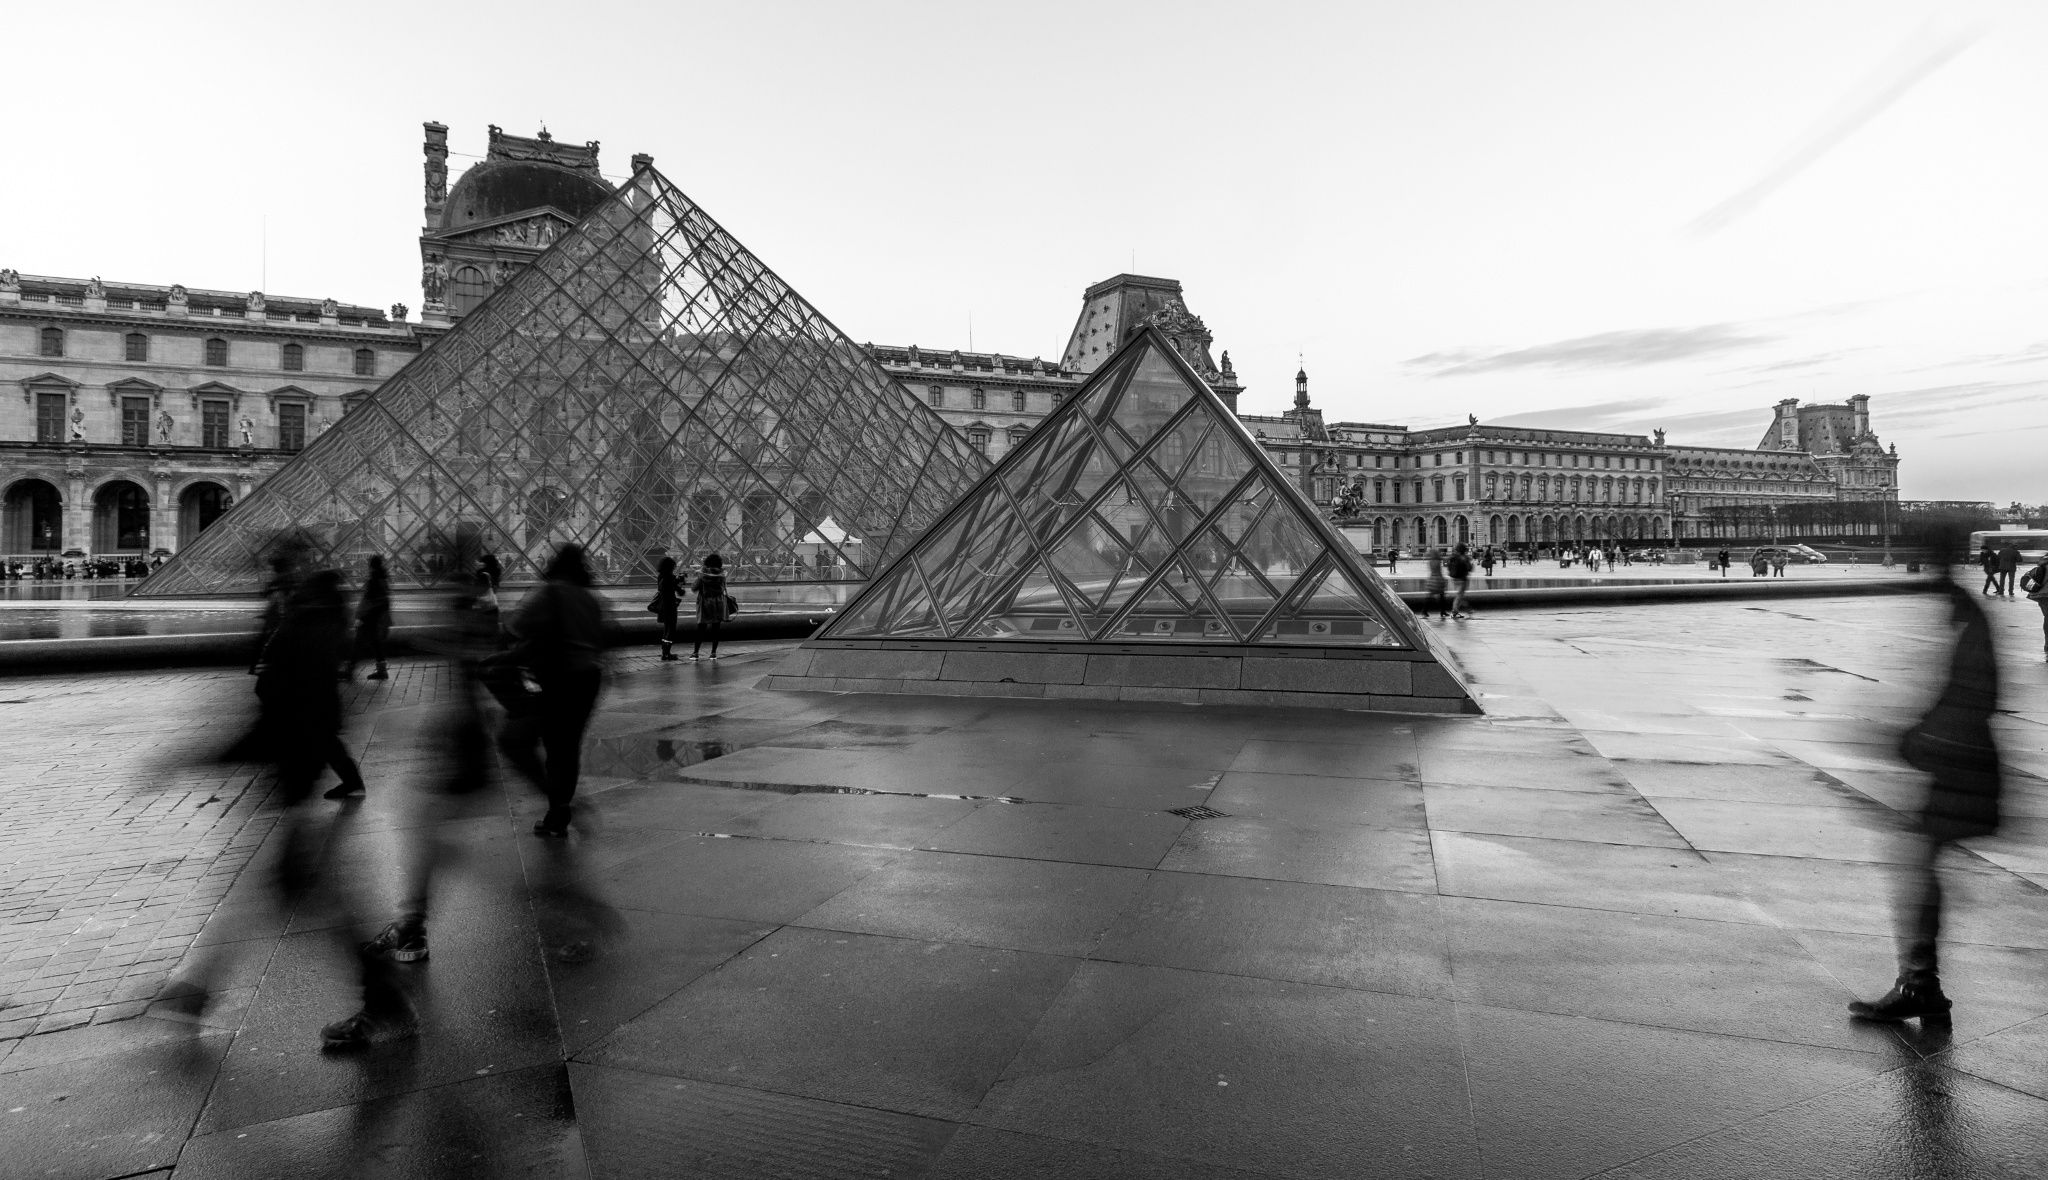 Musee du Louvre by Brandon Watts on 500px